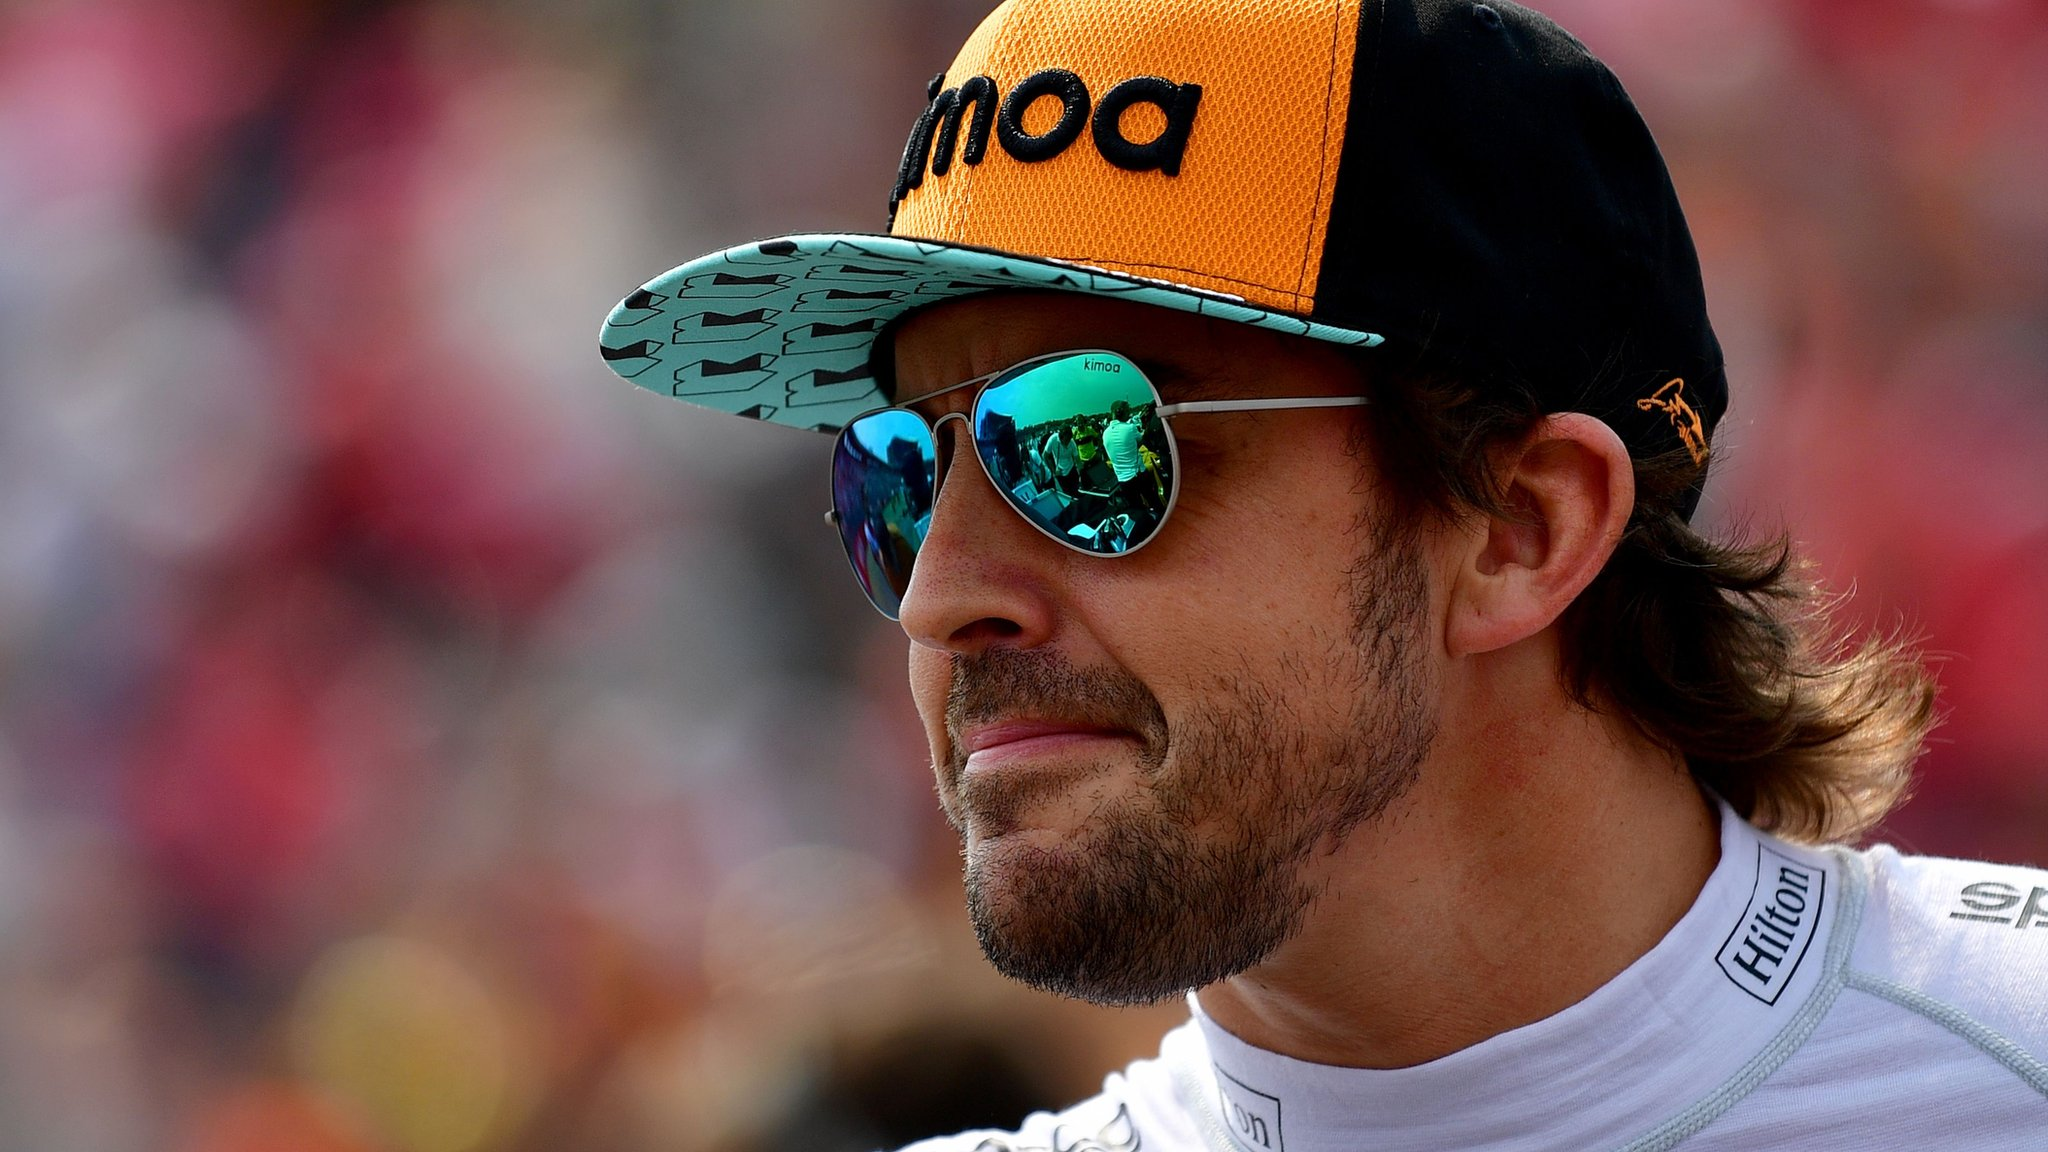 McLaren's two-time world champion Alonso to retire from Formula 1